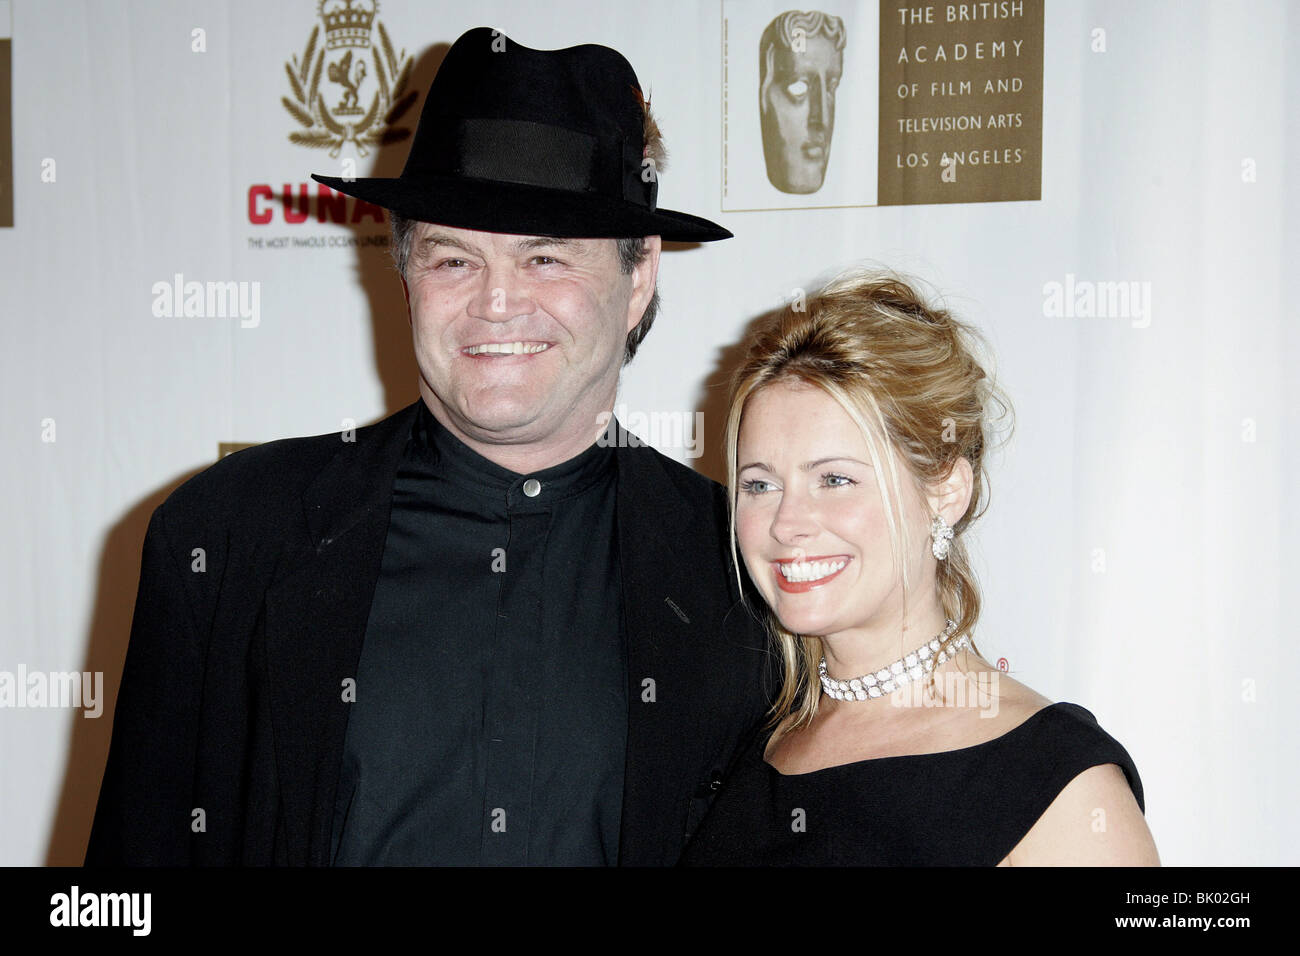 MICKEY DOLENZ & WIFE 2005 BAFTA/LA CUNARD BRITANNIA AWARDS BEVERLY HILTON HOTEL HOLLYWOOD LOS ANGELES USA 10 November Stock Photo